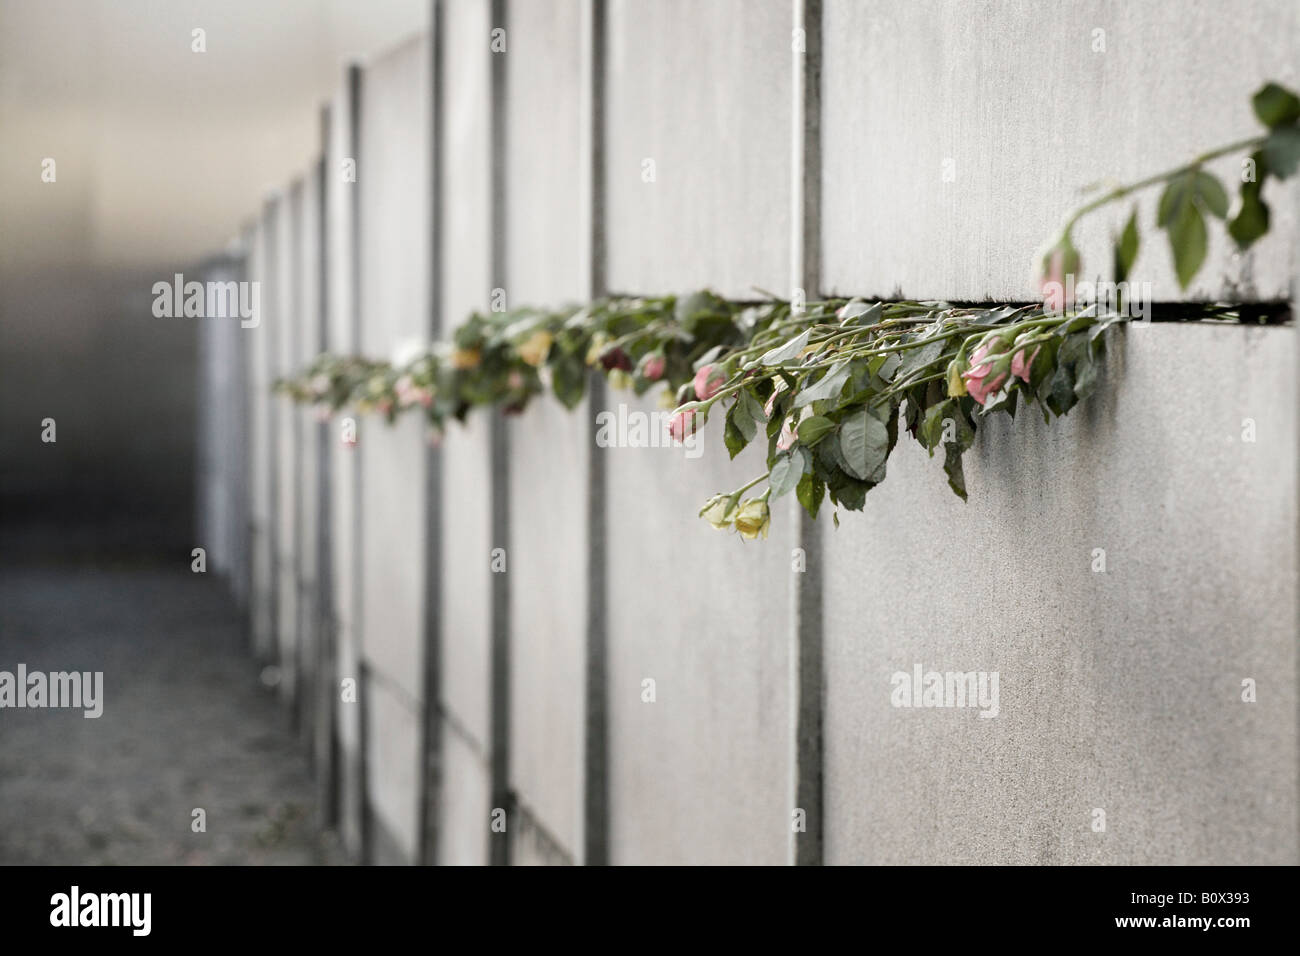 Roses protruding from the Berlin Wall - Stock Image